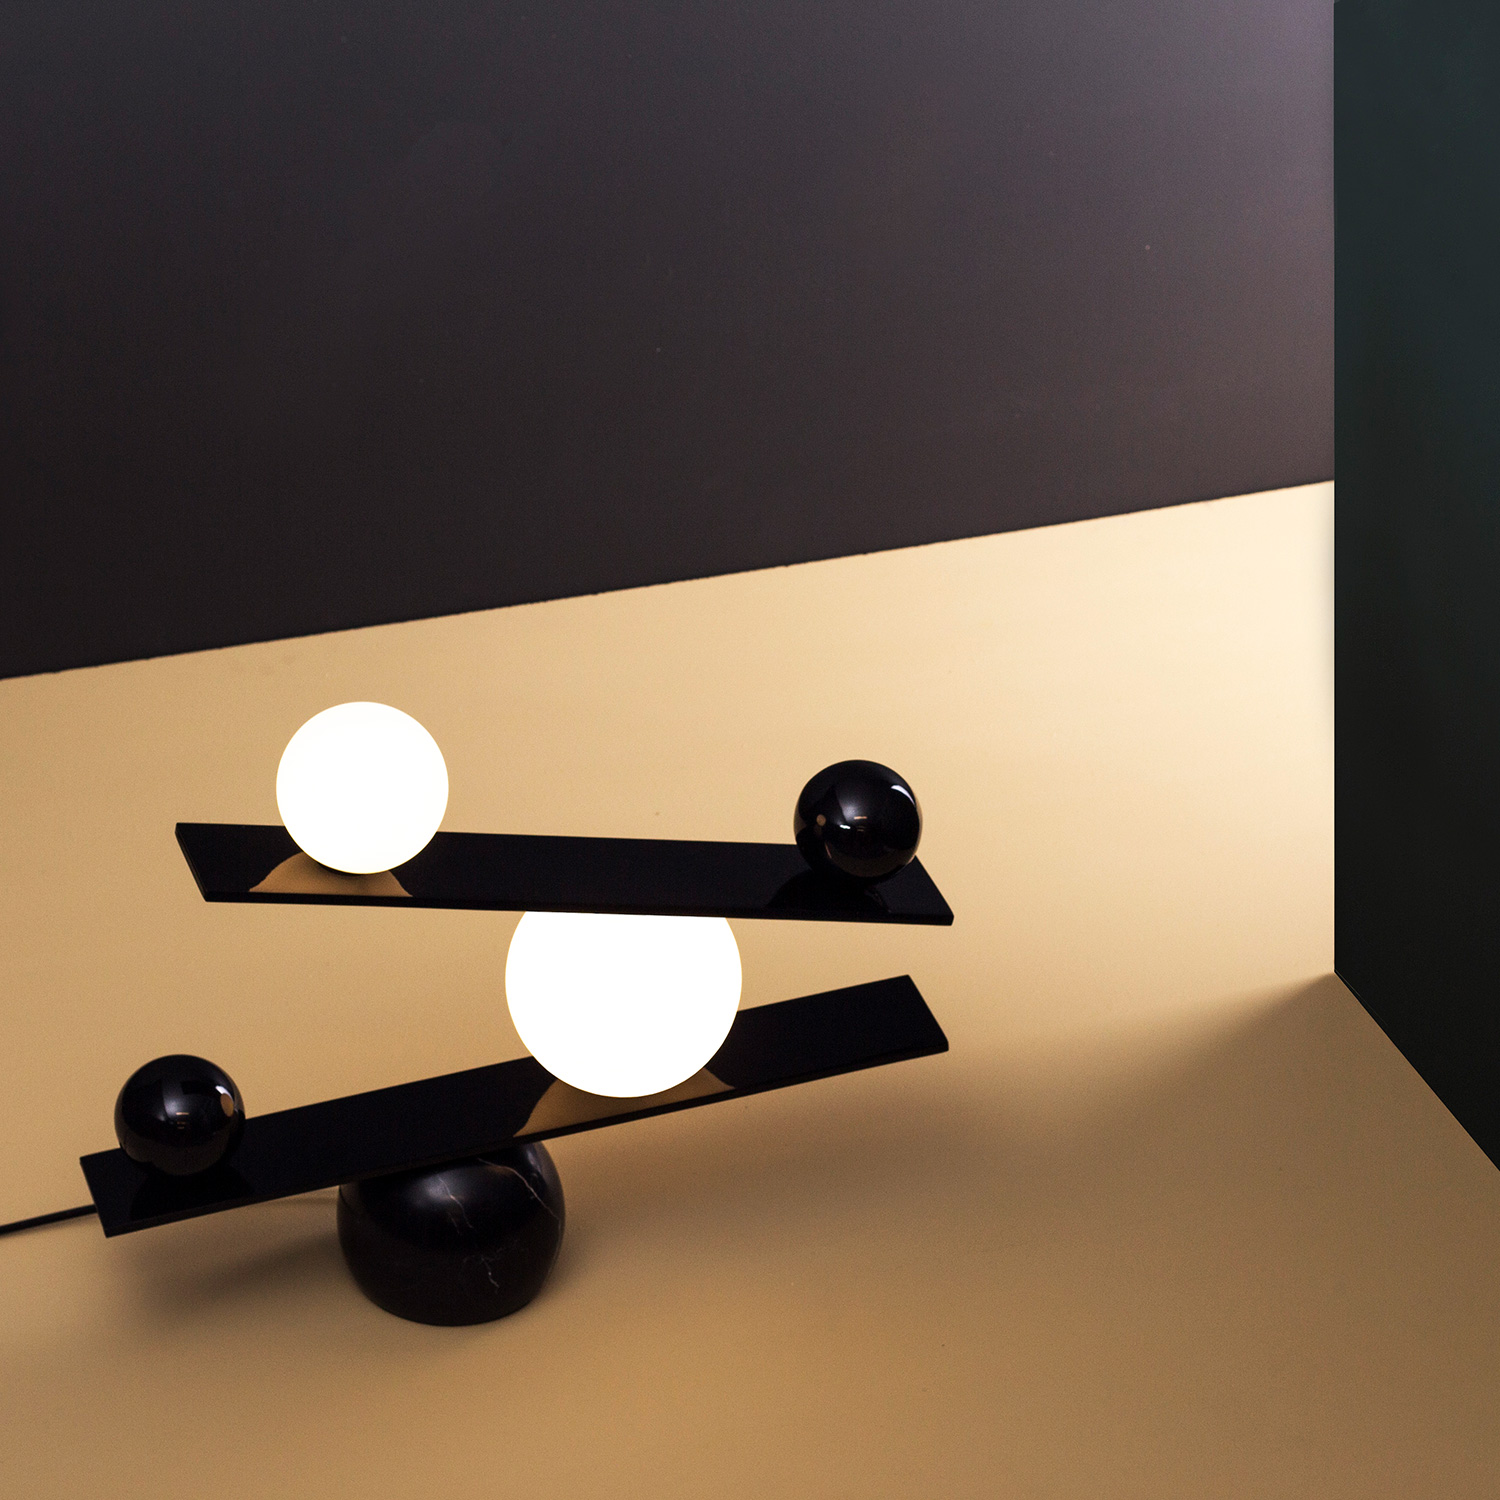 Oblure_Balance_table_lamp_Castanera1x1